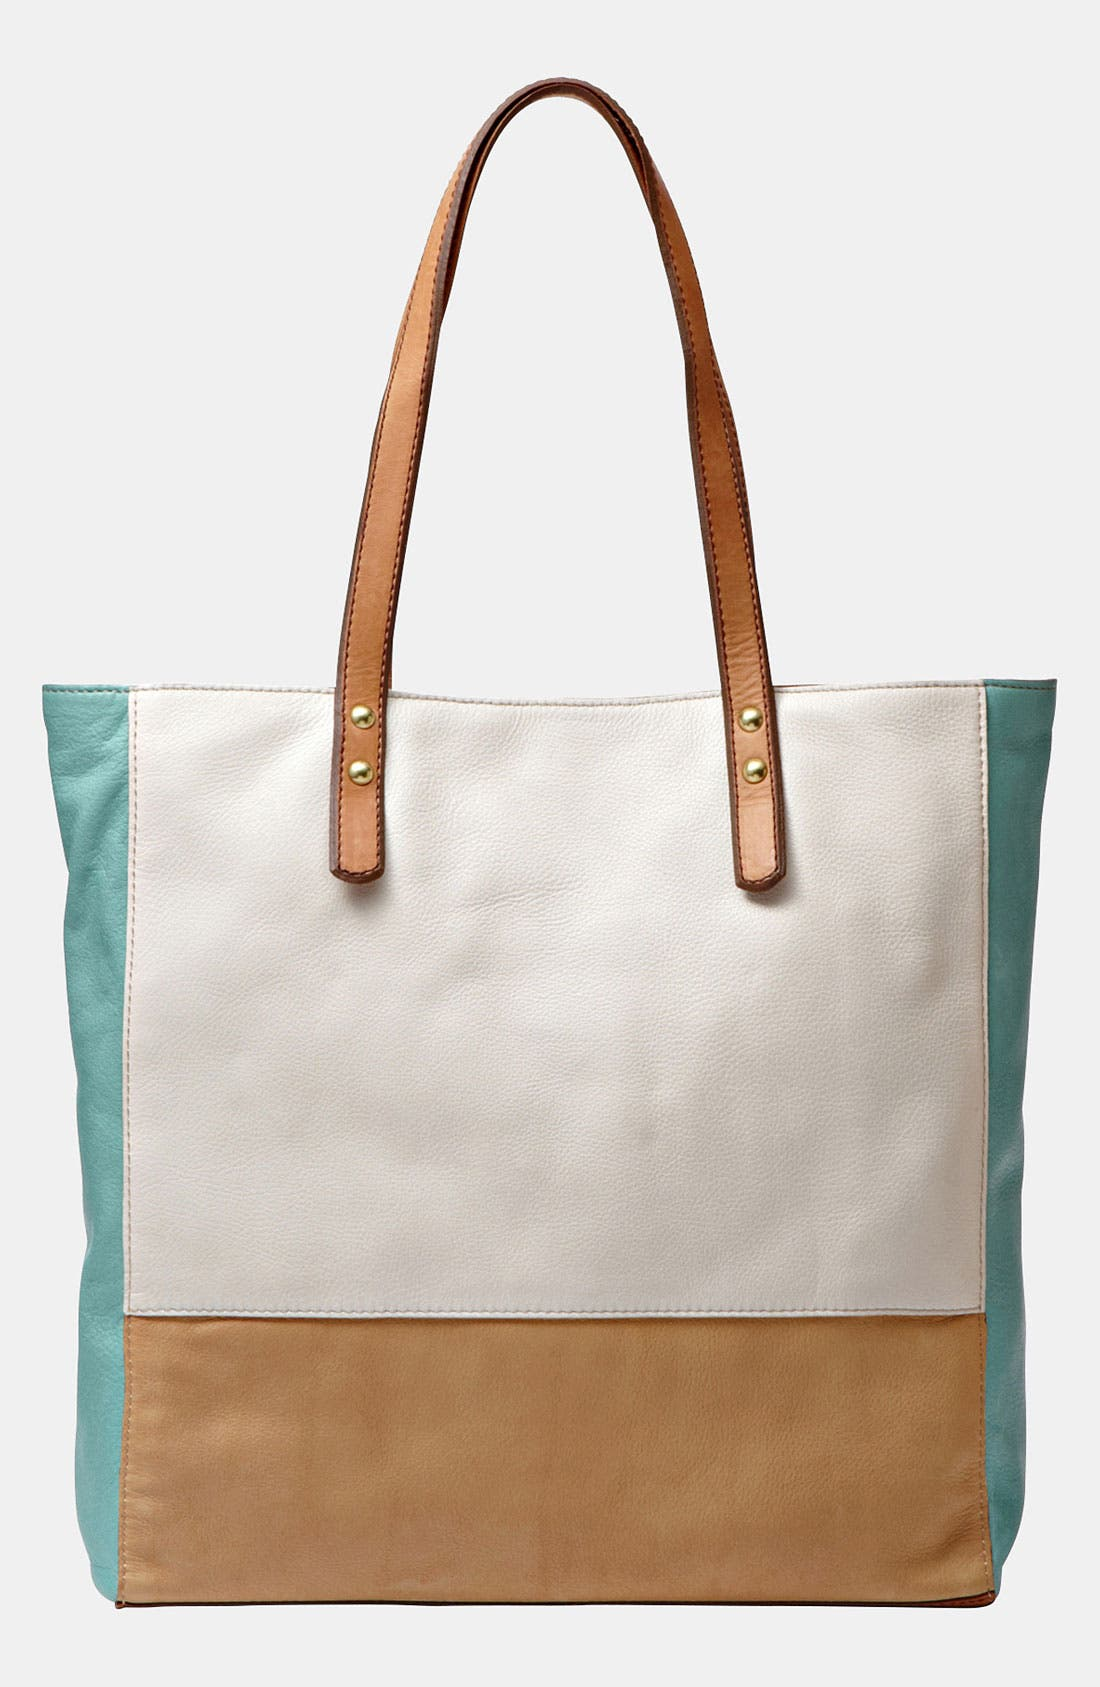 Alternate Image 1 Selected - Fossil 'Zoey' Tote